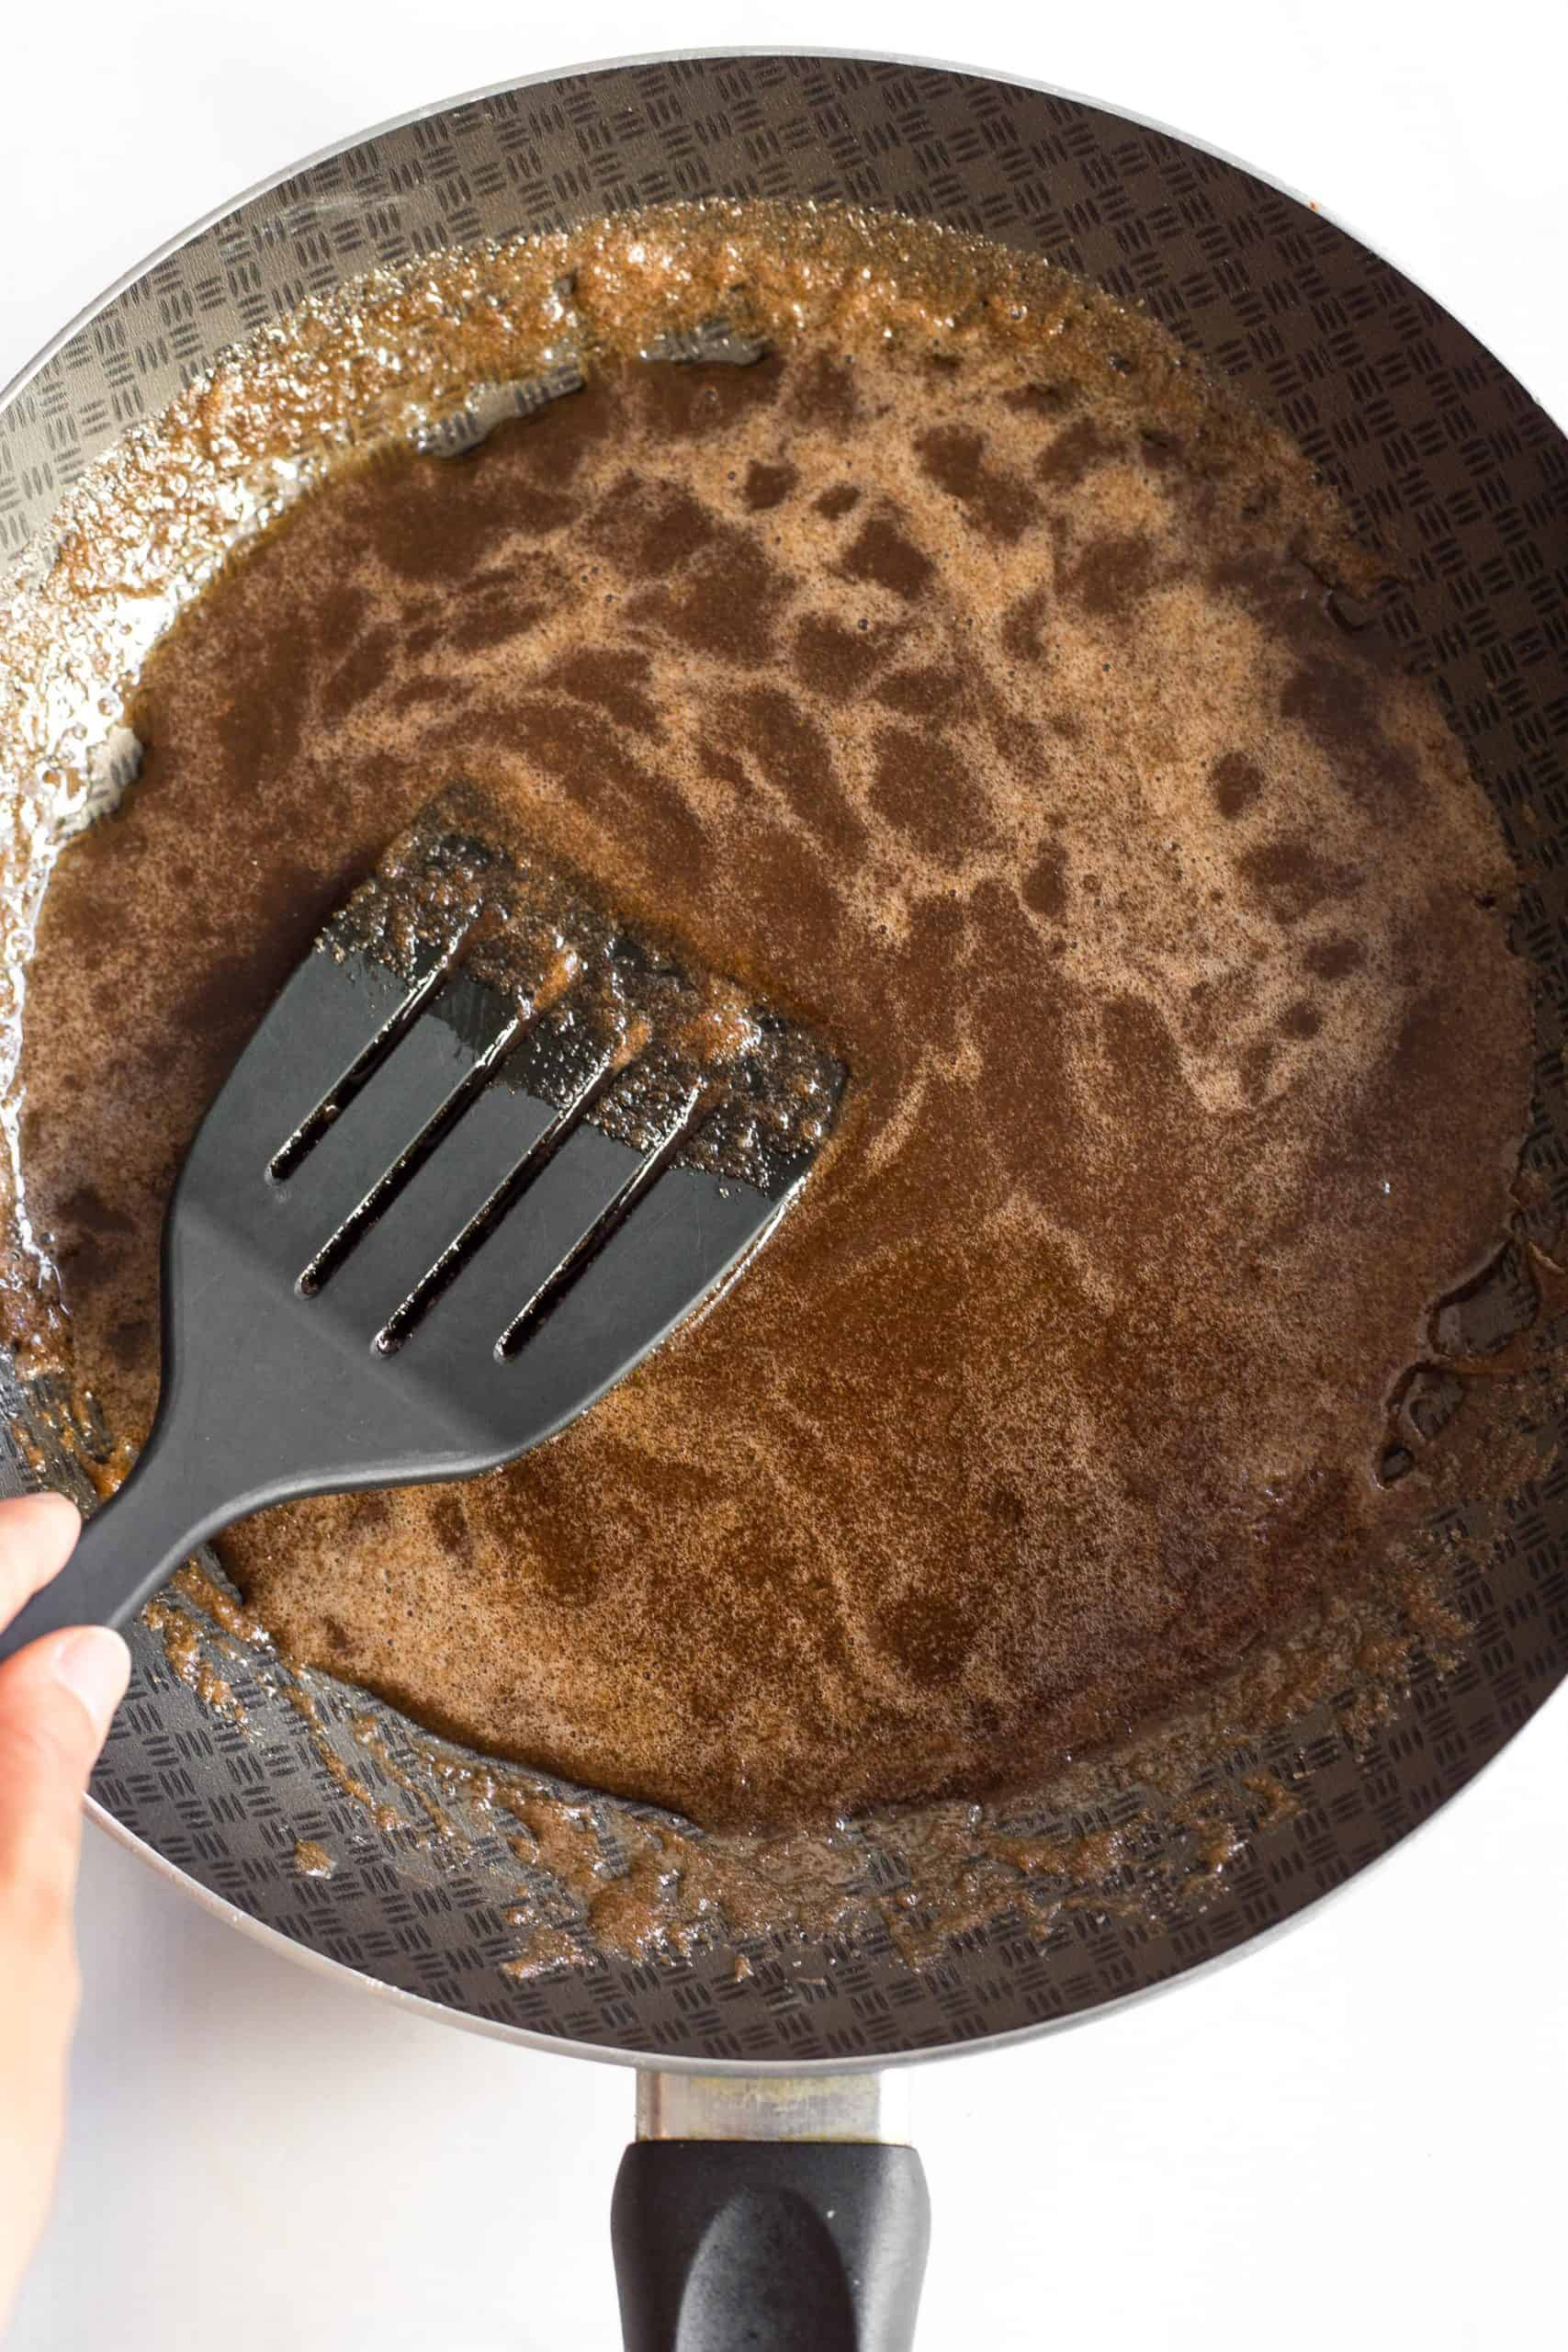 Mixing brown sugar mixture in a skillet.